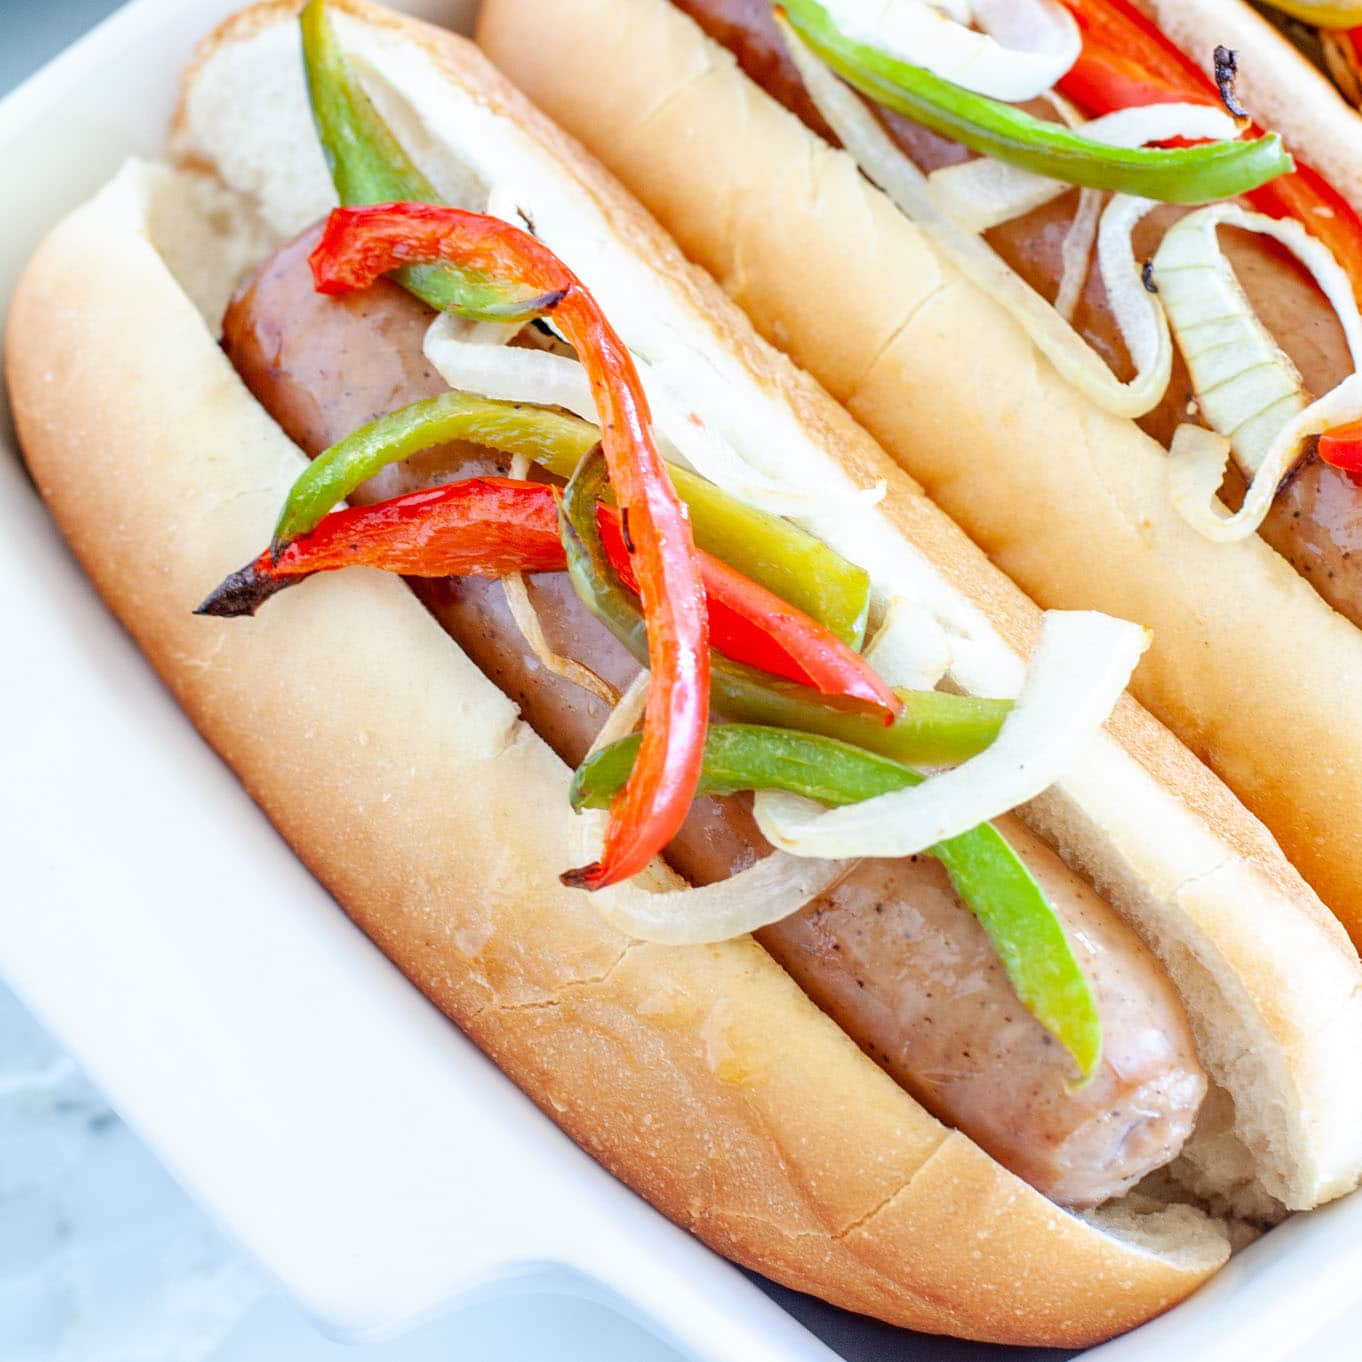 Brat in a bun with onions and peppers.